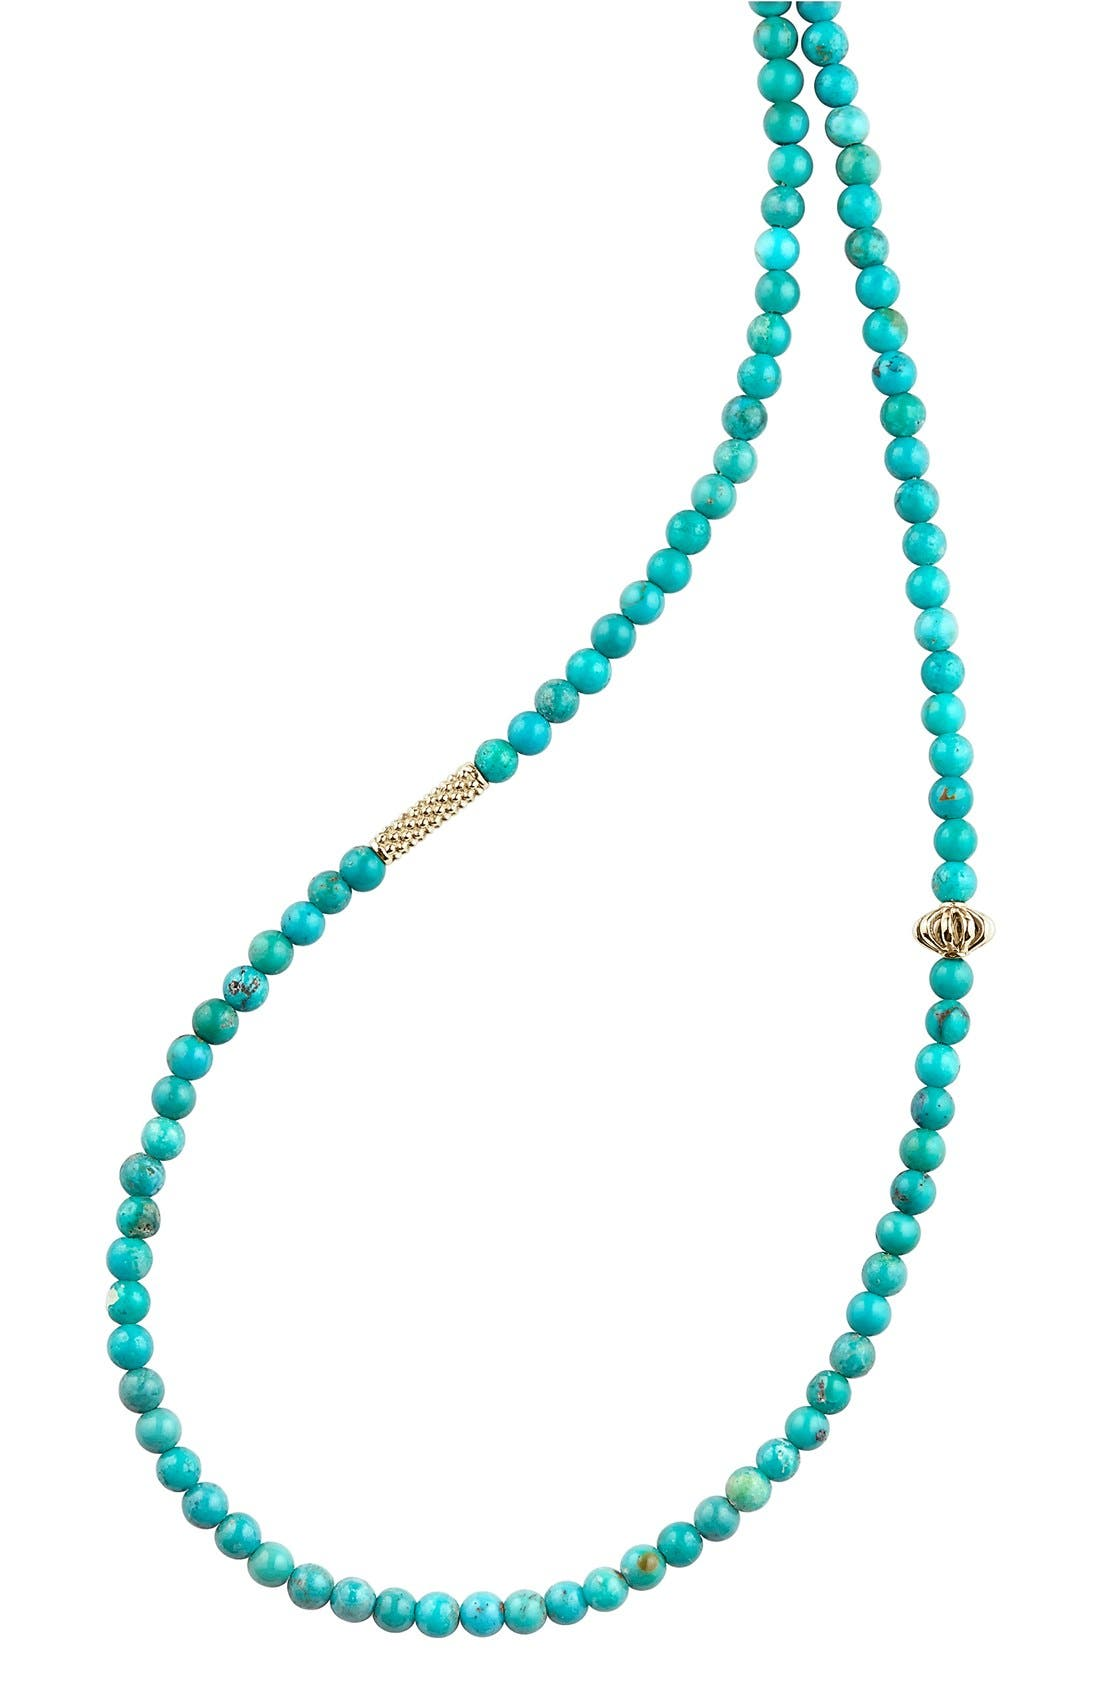 'Caviar Icon' Strand Necklace,                             Alternate thumbnail 2, color,                             Turquoise/ Gold